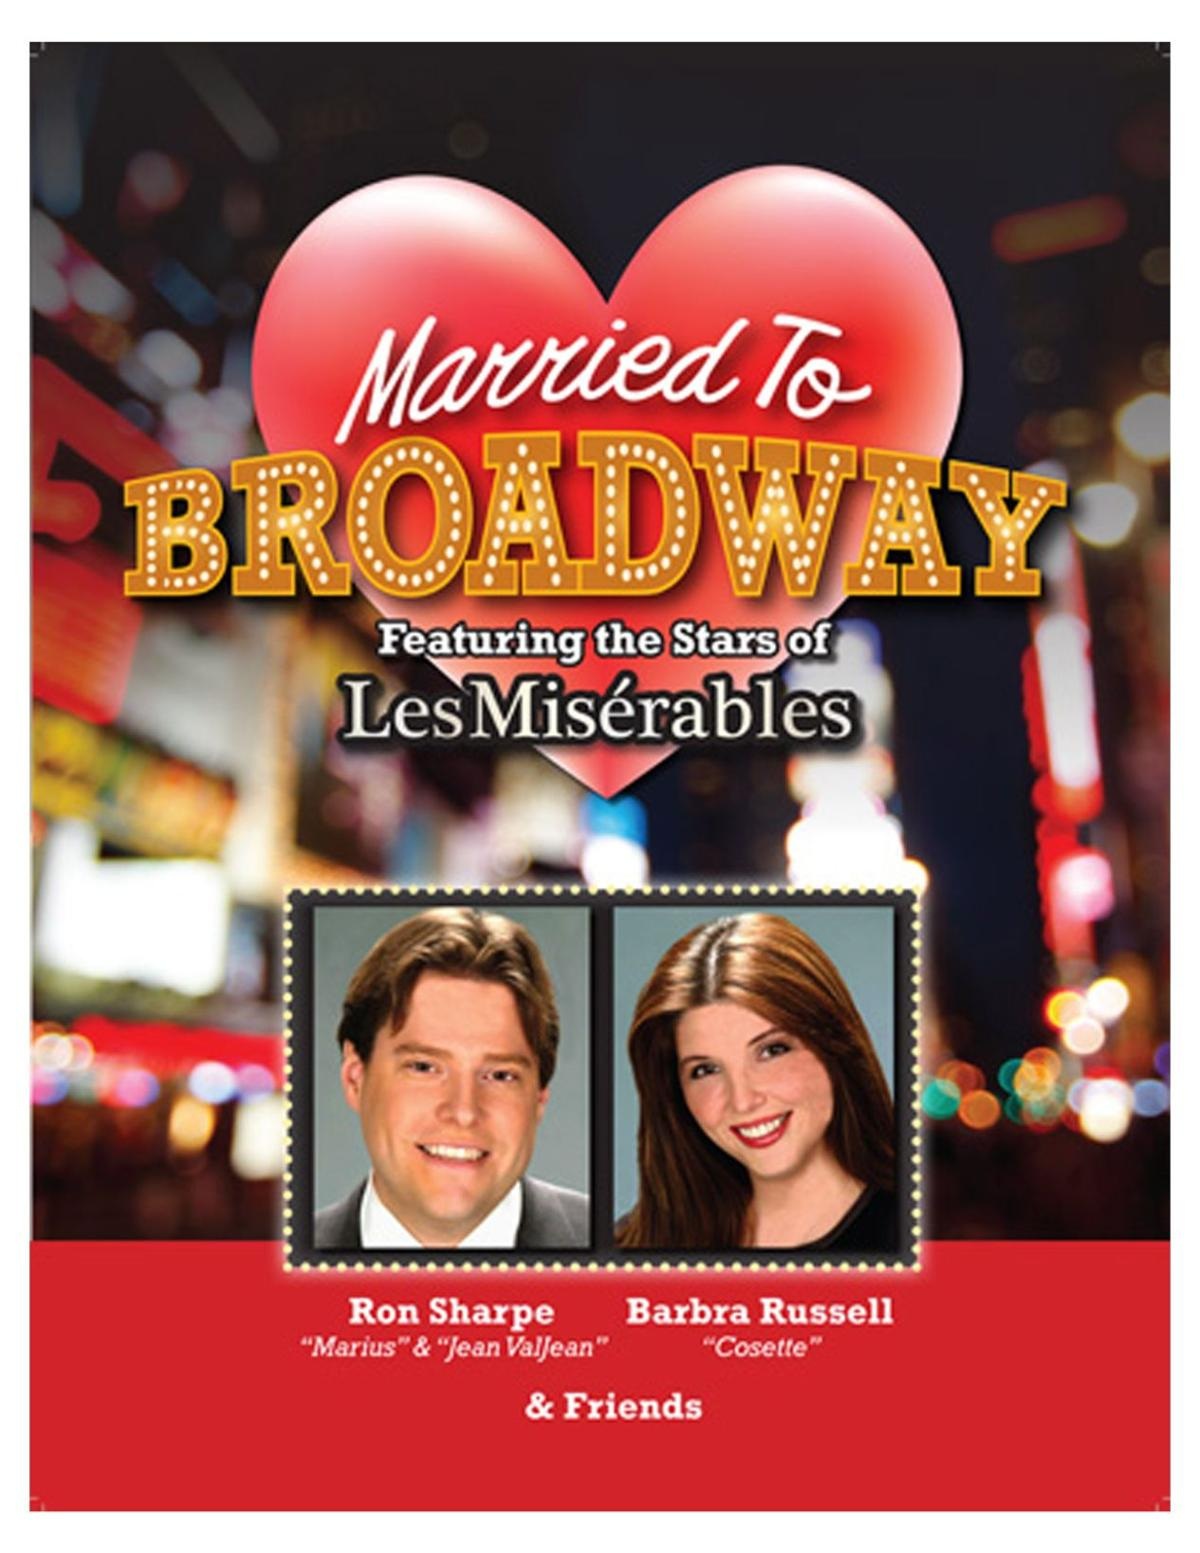 Englewood Performing Arts Society opens season with 'Married to Broadway'